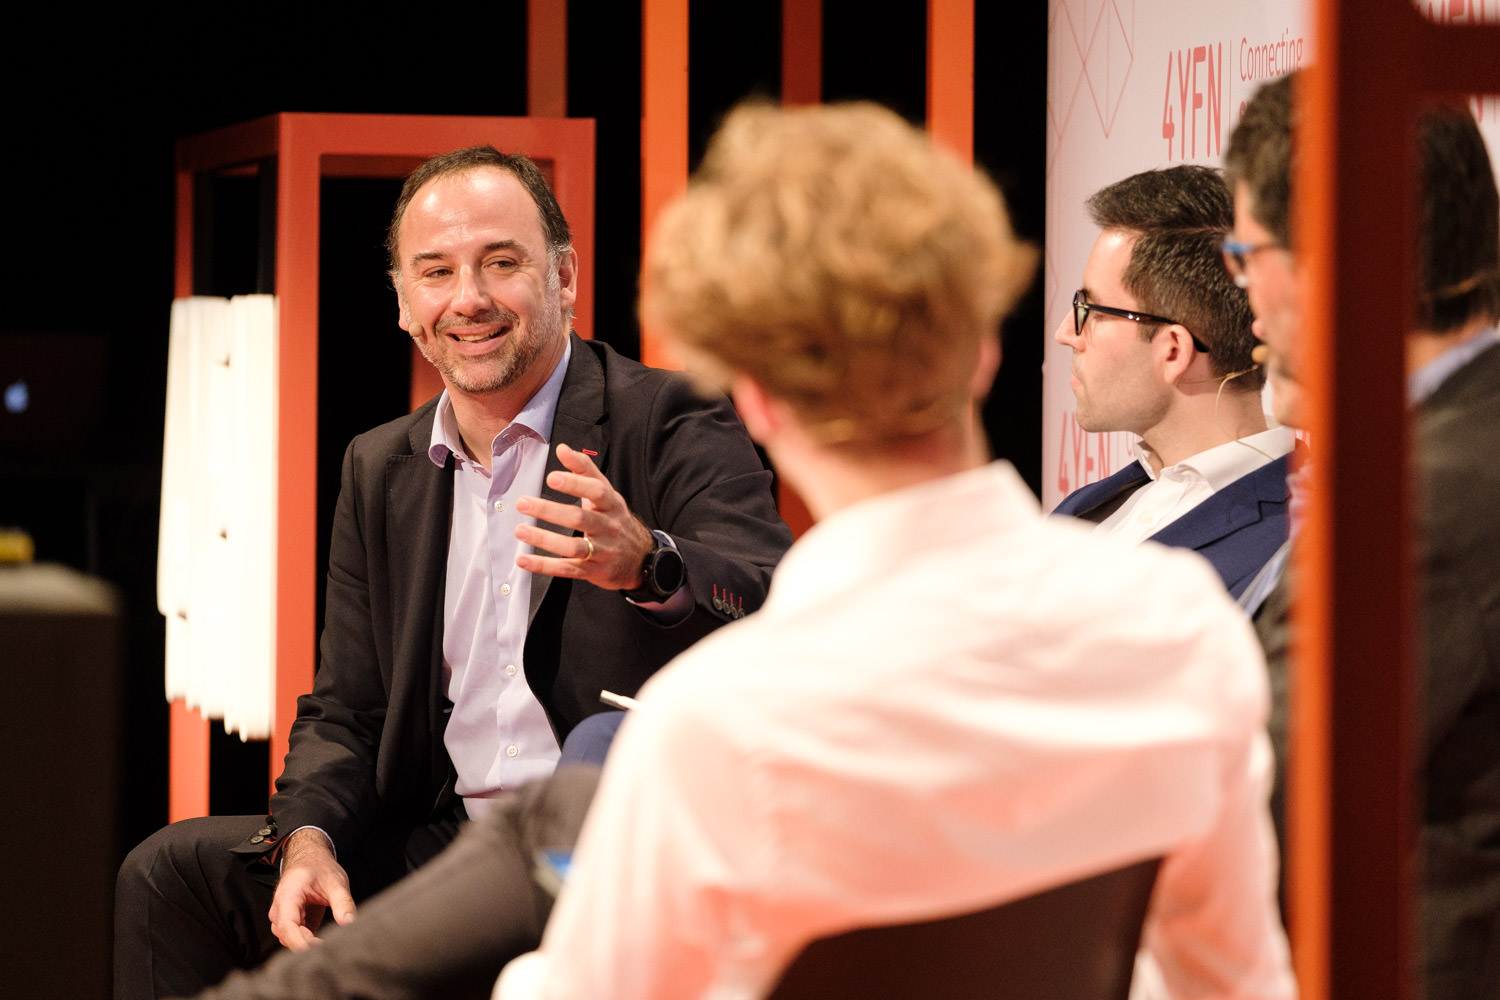 A photograph of Oscar Sala talking on stage, with Carles Puente, Josemaria Sota and Martin Dietz, on the AGORA stage during the 4YFN conference in Barcelona, Spain.